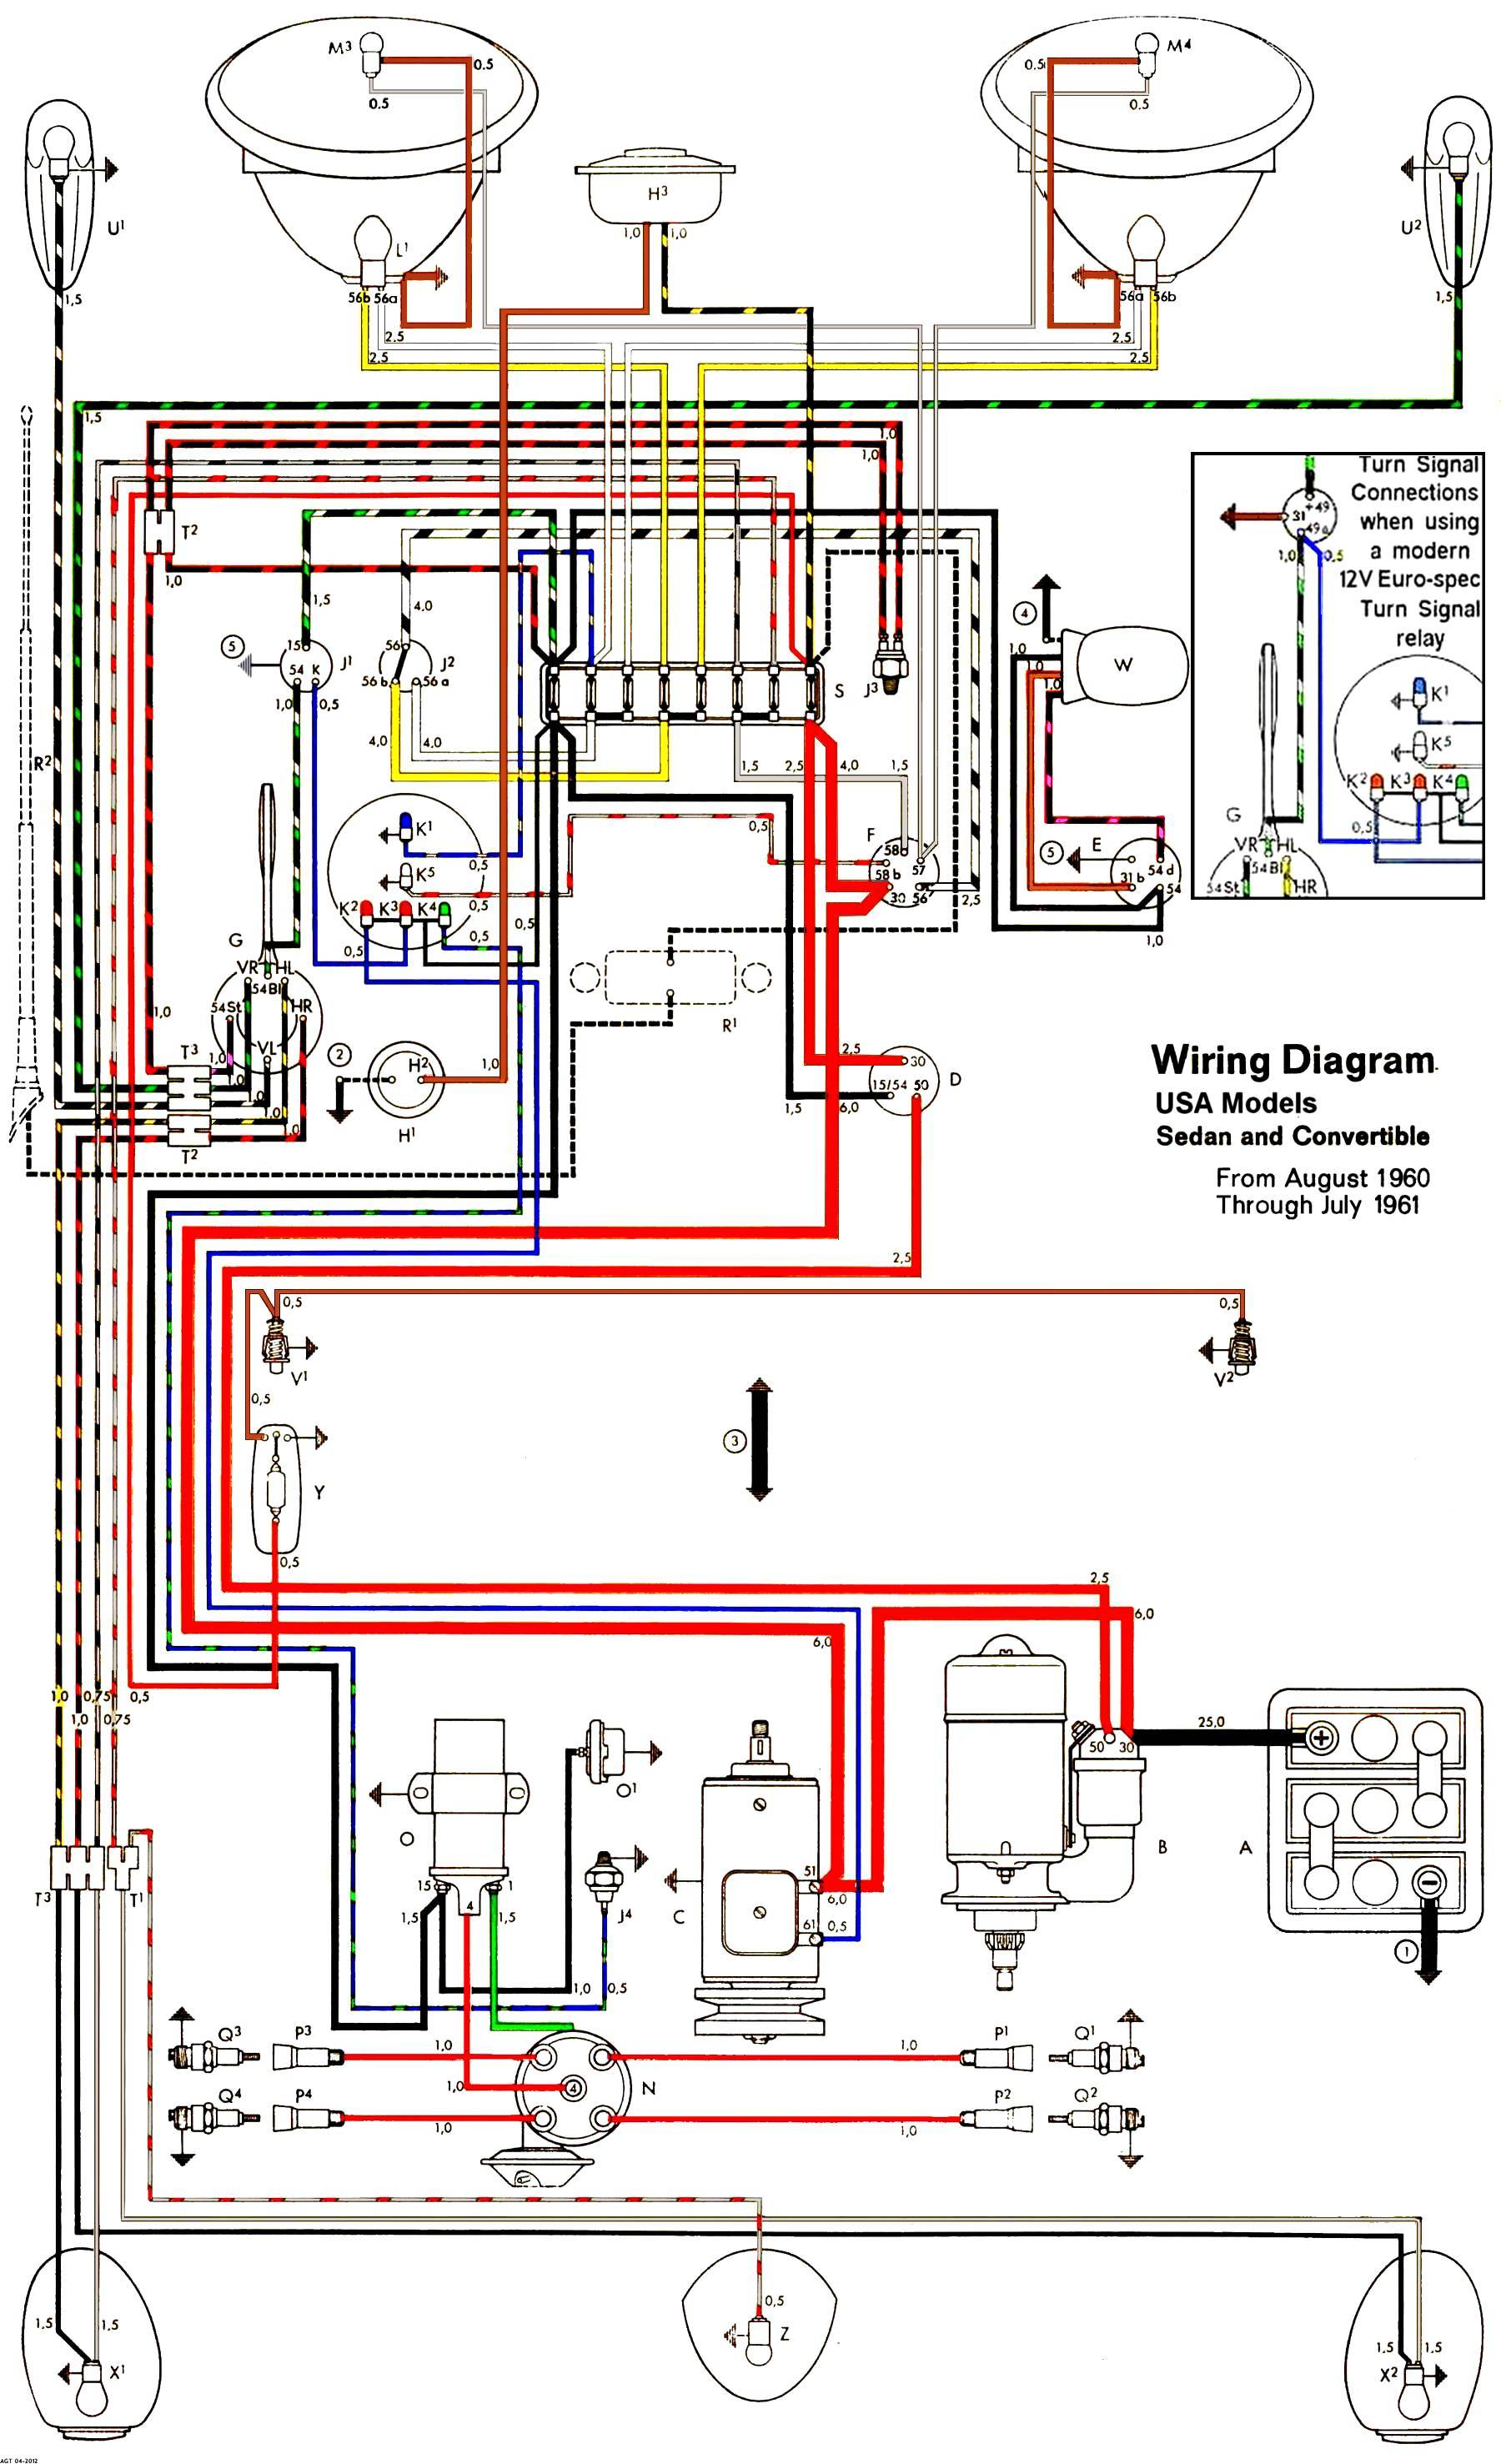 Vw Bug Turn Signal Wiring Reinvent Your Diagram Mack Dm690s Fuse Box 2001 70 Schematics Diagrams U2022 Rh Parntesis Co 1966